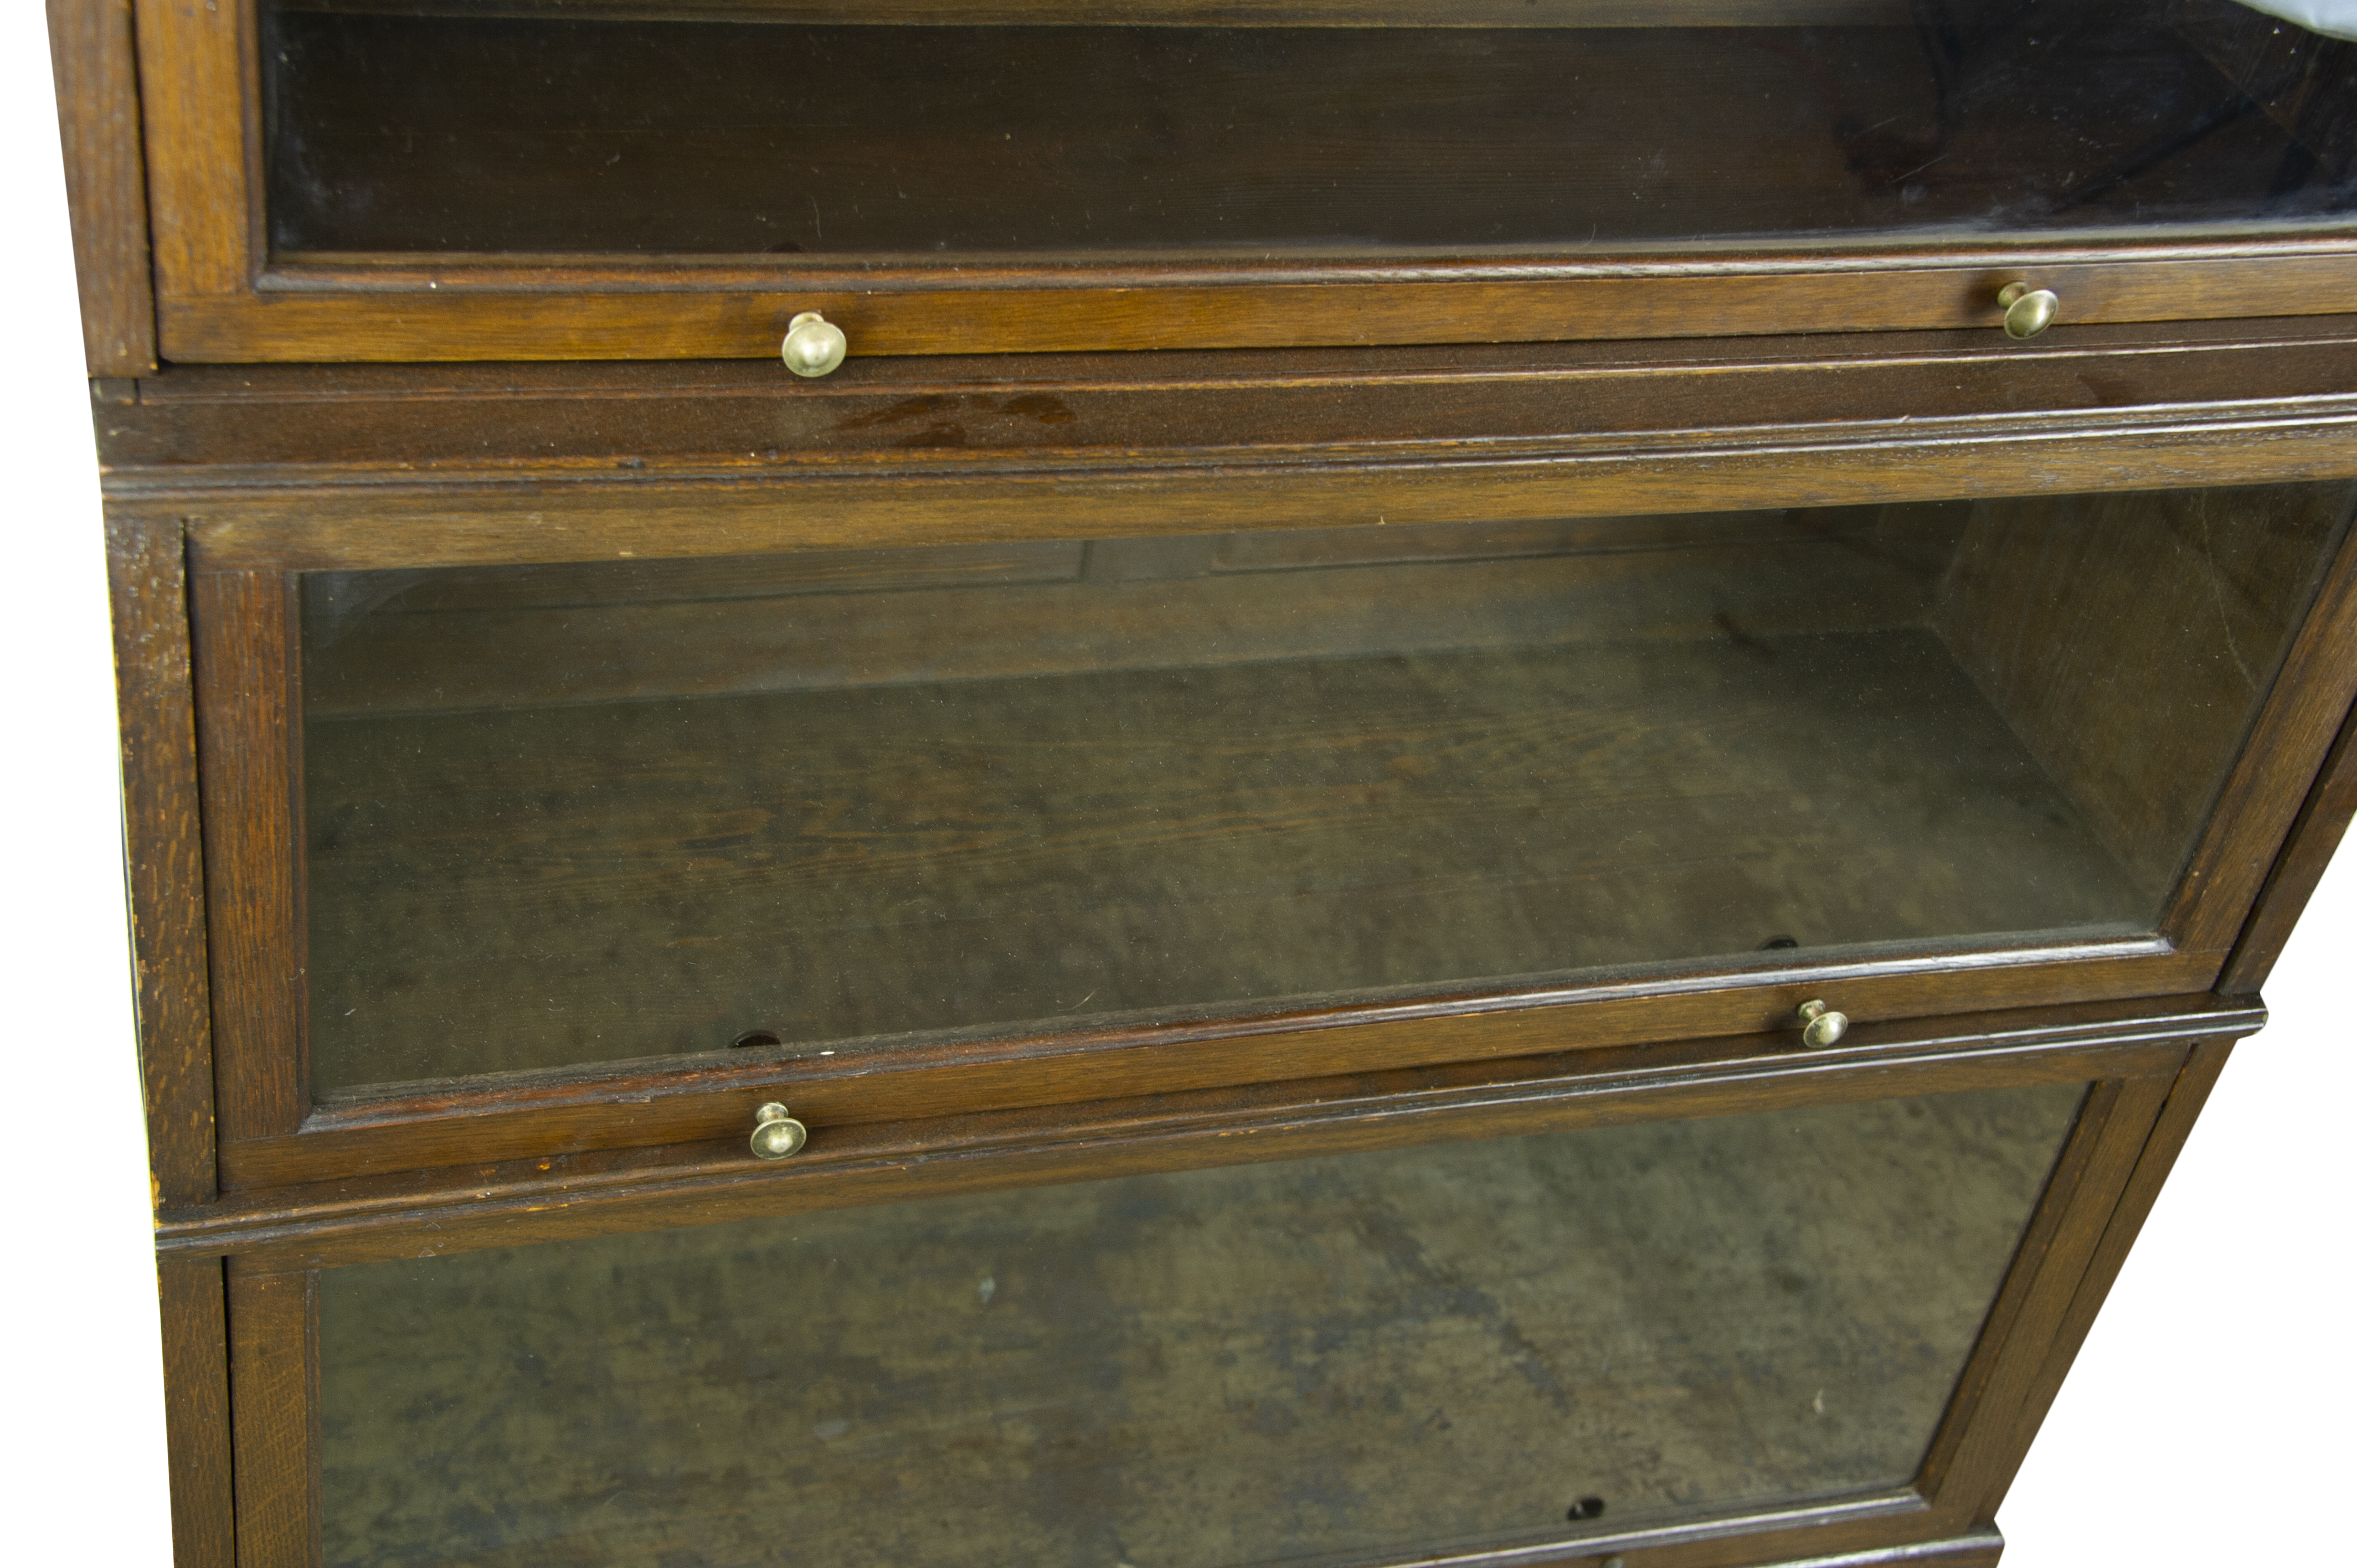 Lawyers Bookcase Oak Bookcase Barristers Bookcase 5 Section Bookcase Scotland 1920 Antique Furniture B1273